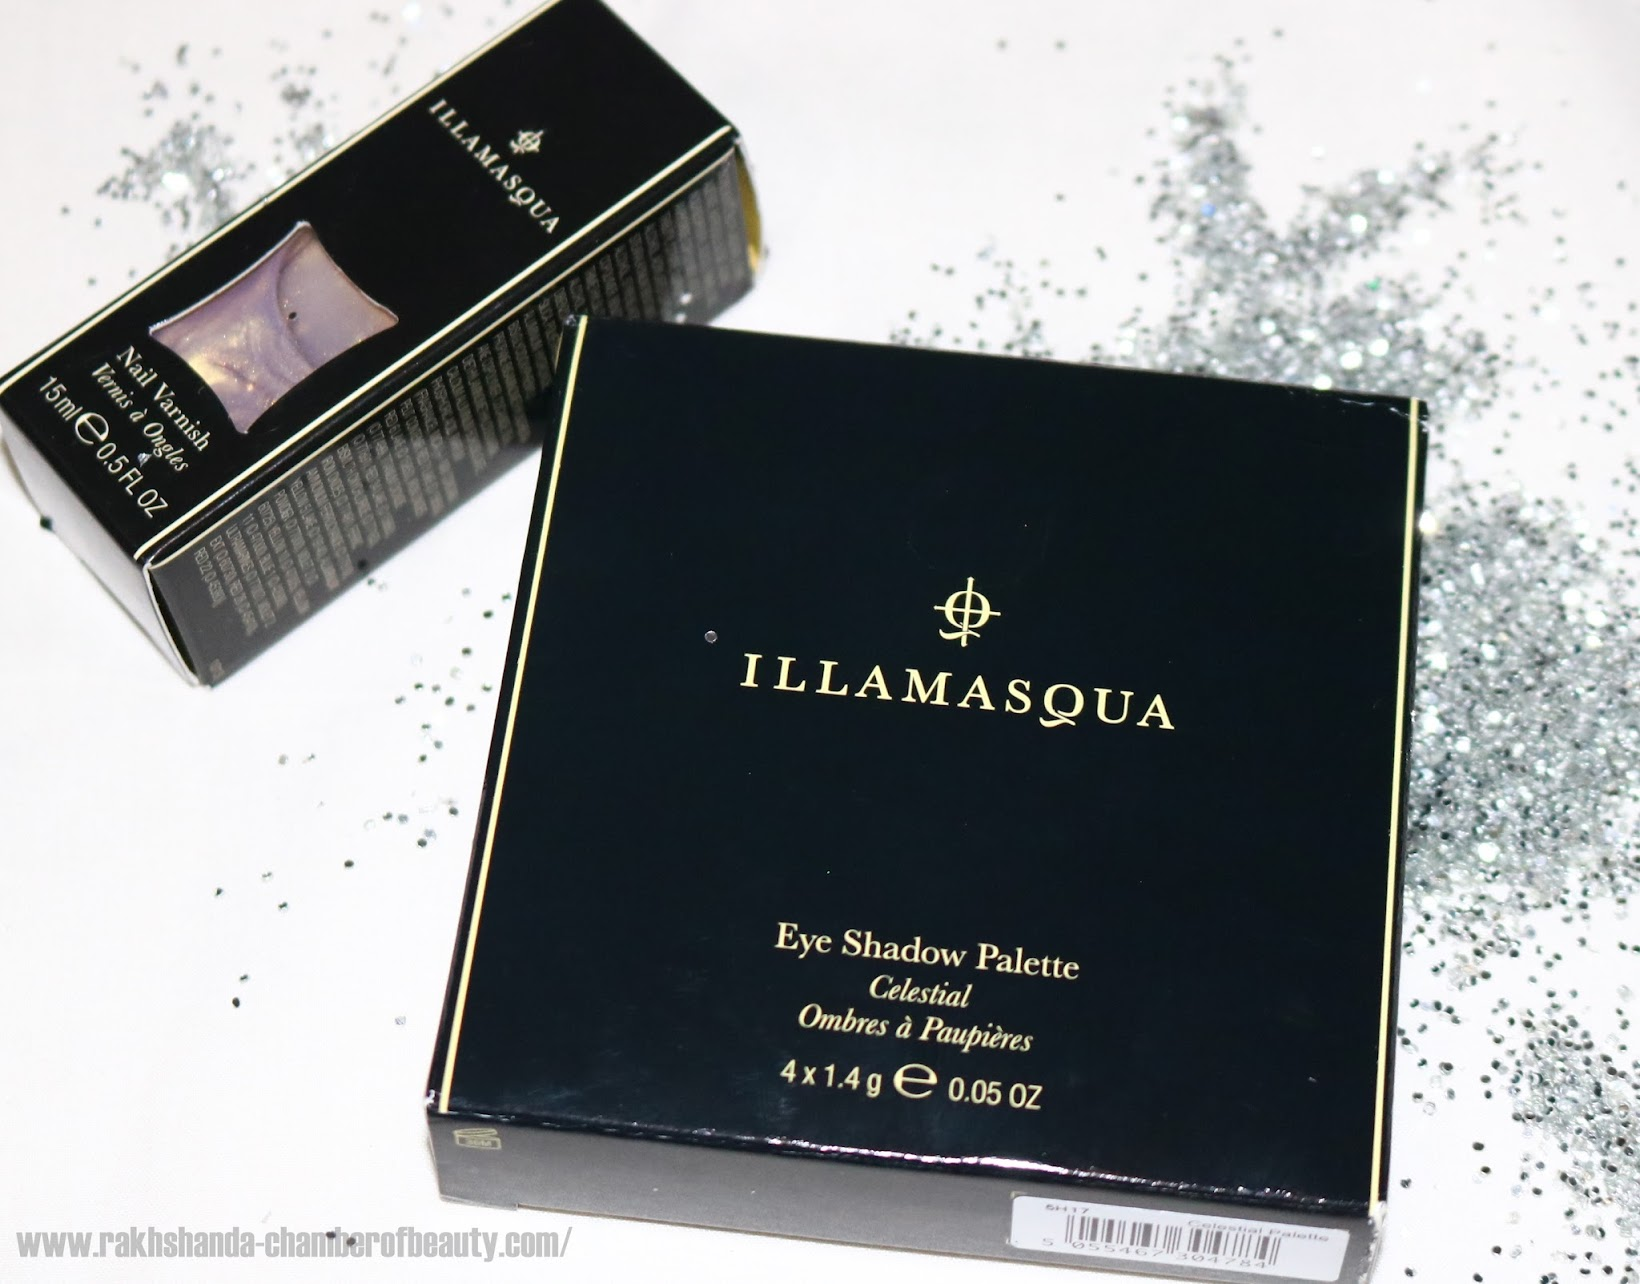 Illamasqua Equinox Collection For Christmas 2015- Review, swatches and more, Illamasqua celestial Palette, Illamasqua Nail Varnish Beam, Indian beauty blogger